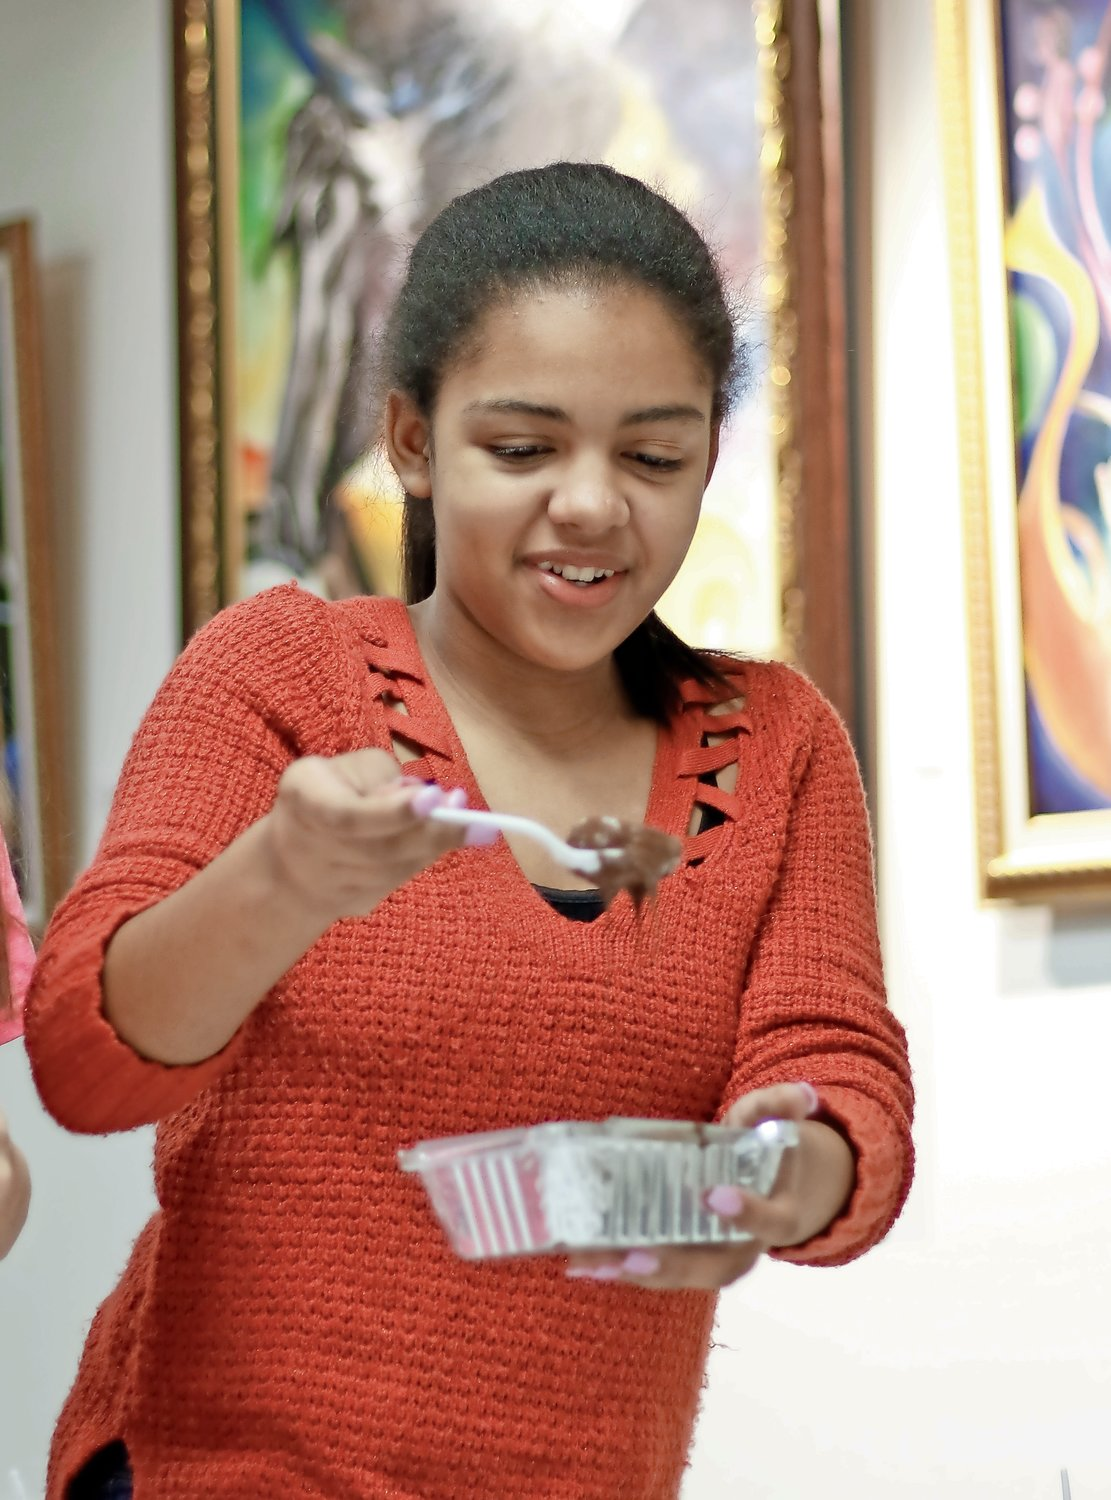 After dipping her Oreo in melted chocolate, Janna Okolie, 12, added Sweet Tarts to the top for decoration.